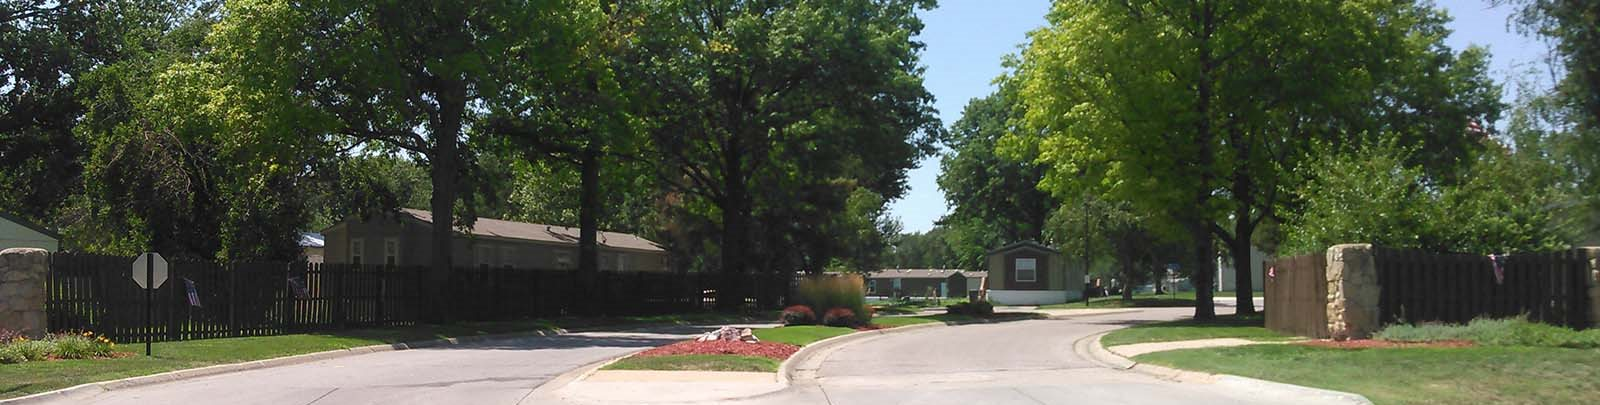 Entrance Driveway at Maple Grove Rental Homes in Lincoln, NE